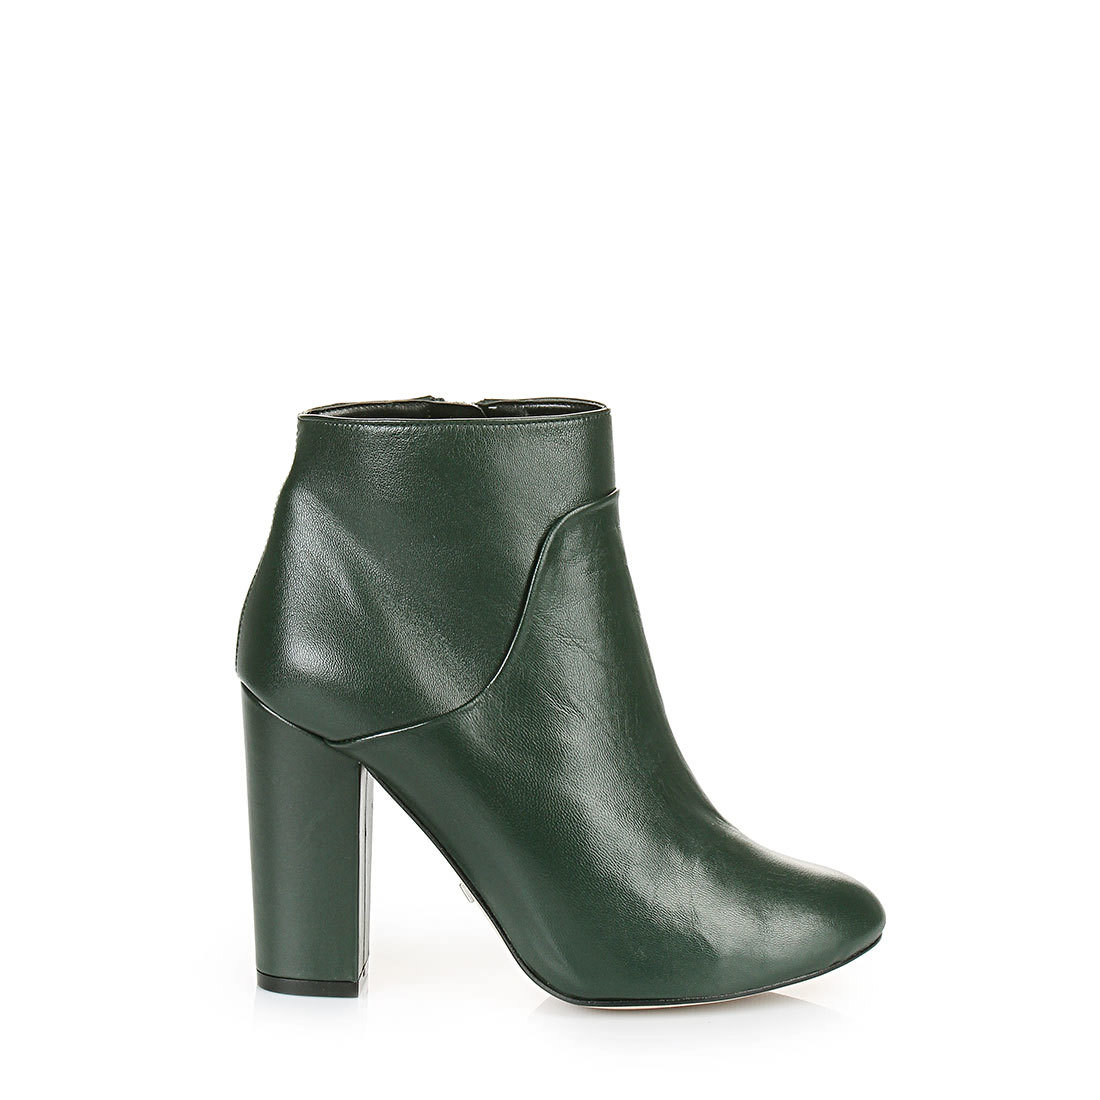 Buffalo ankle boots in fir green buy online in BUFFALO Online-Shop ...